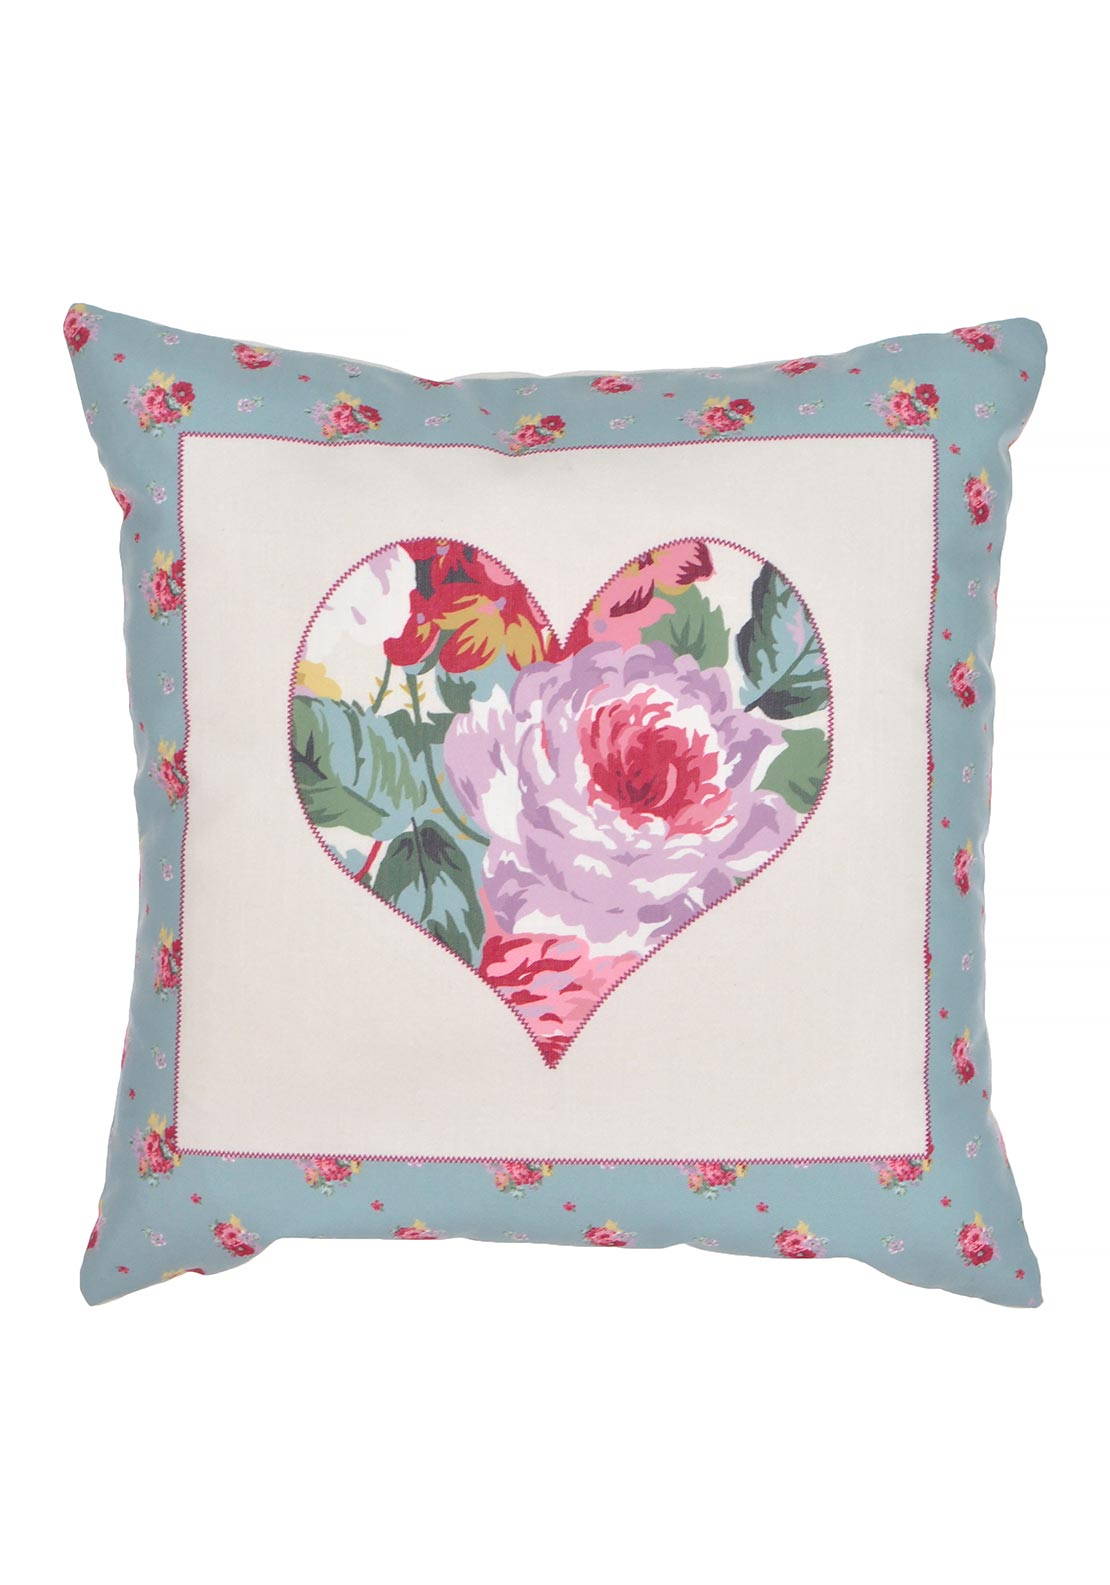 Dreams & Drapes Camberley Cushion, Cream 43x43cms